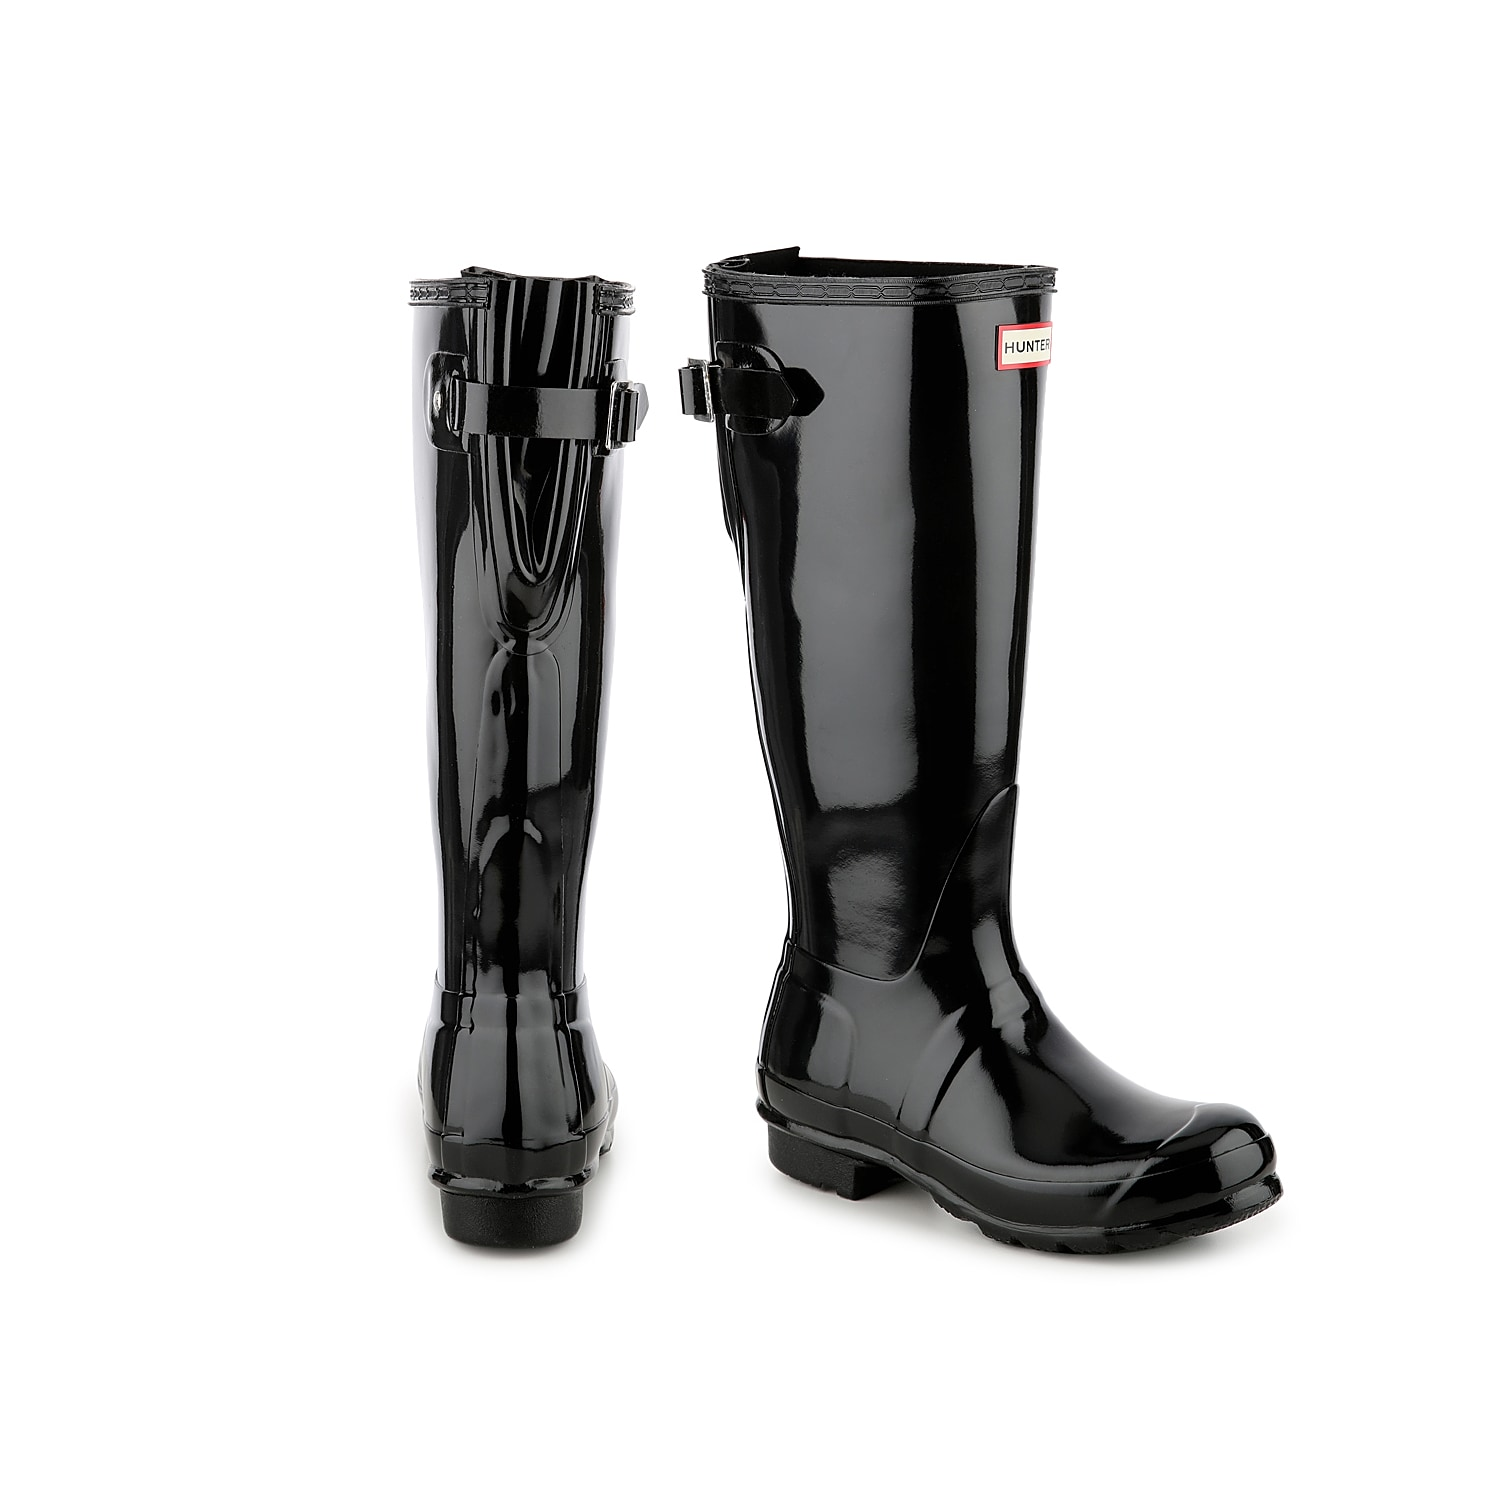 Take on even the gloomiest of days with the Original Tall Gloss Back Adjustable rain boot from Hunter. An adjustable back gusset makes these waterproof wellies perfect to pair with jeans and thick socks!   Click here for Boot Measuring Guide.